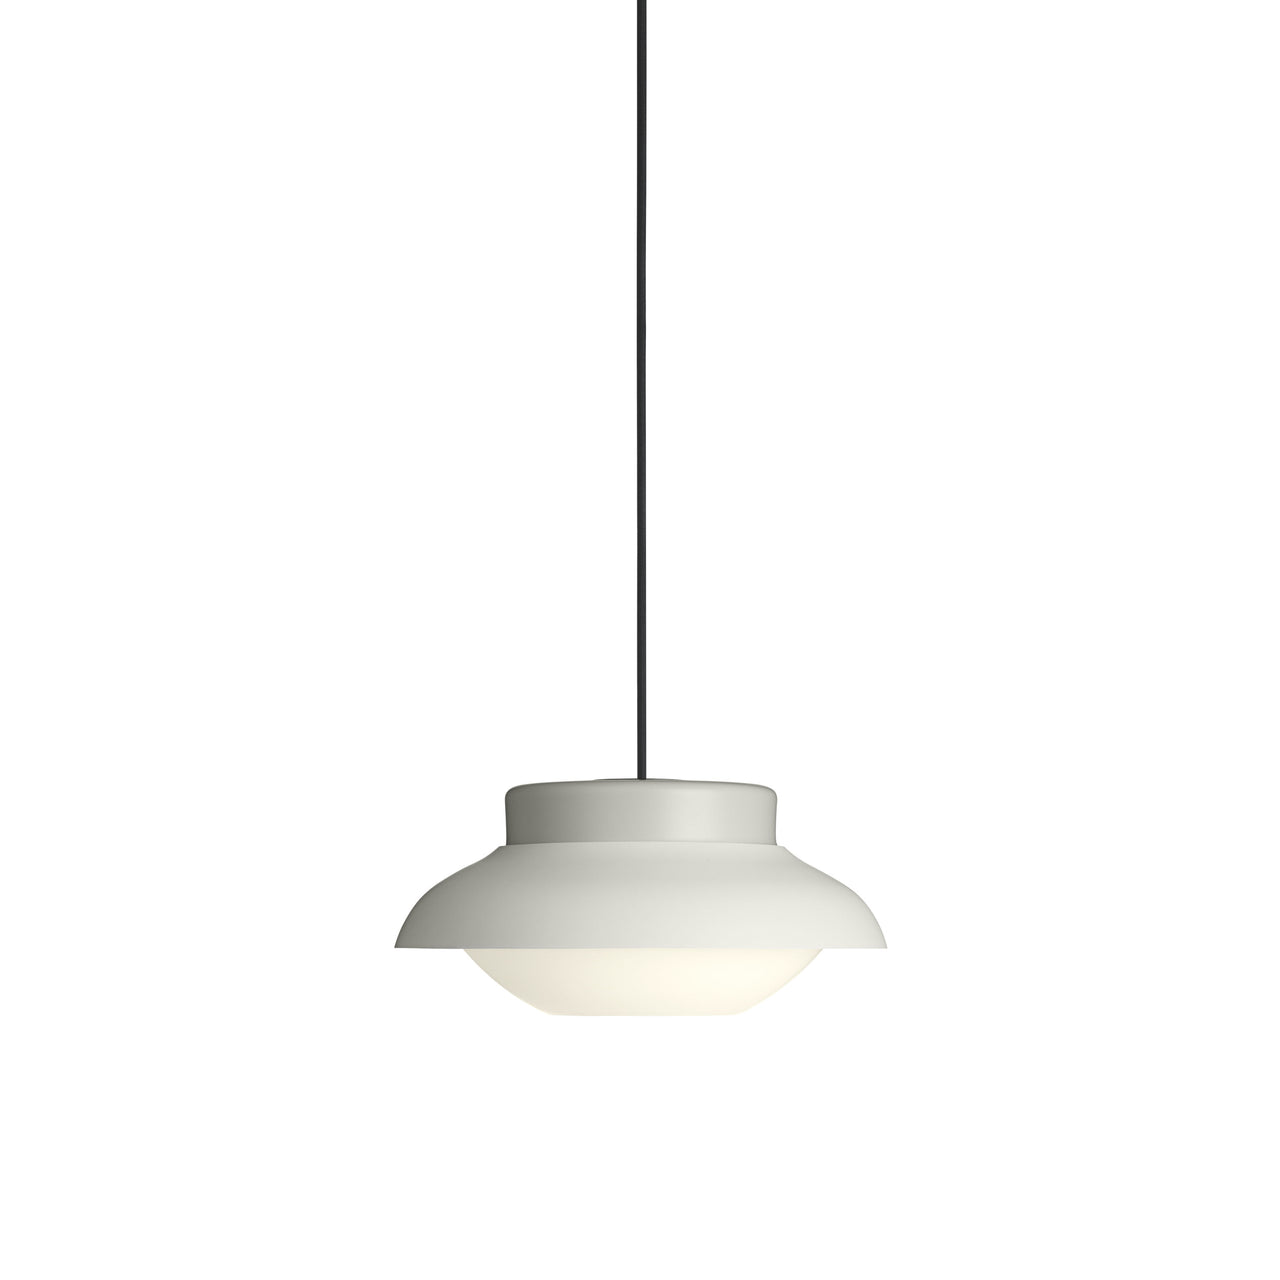 Collar Pendant Light: Small + Stone Grey